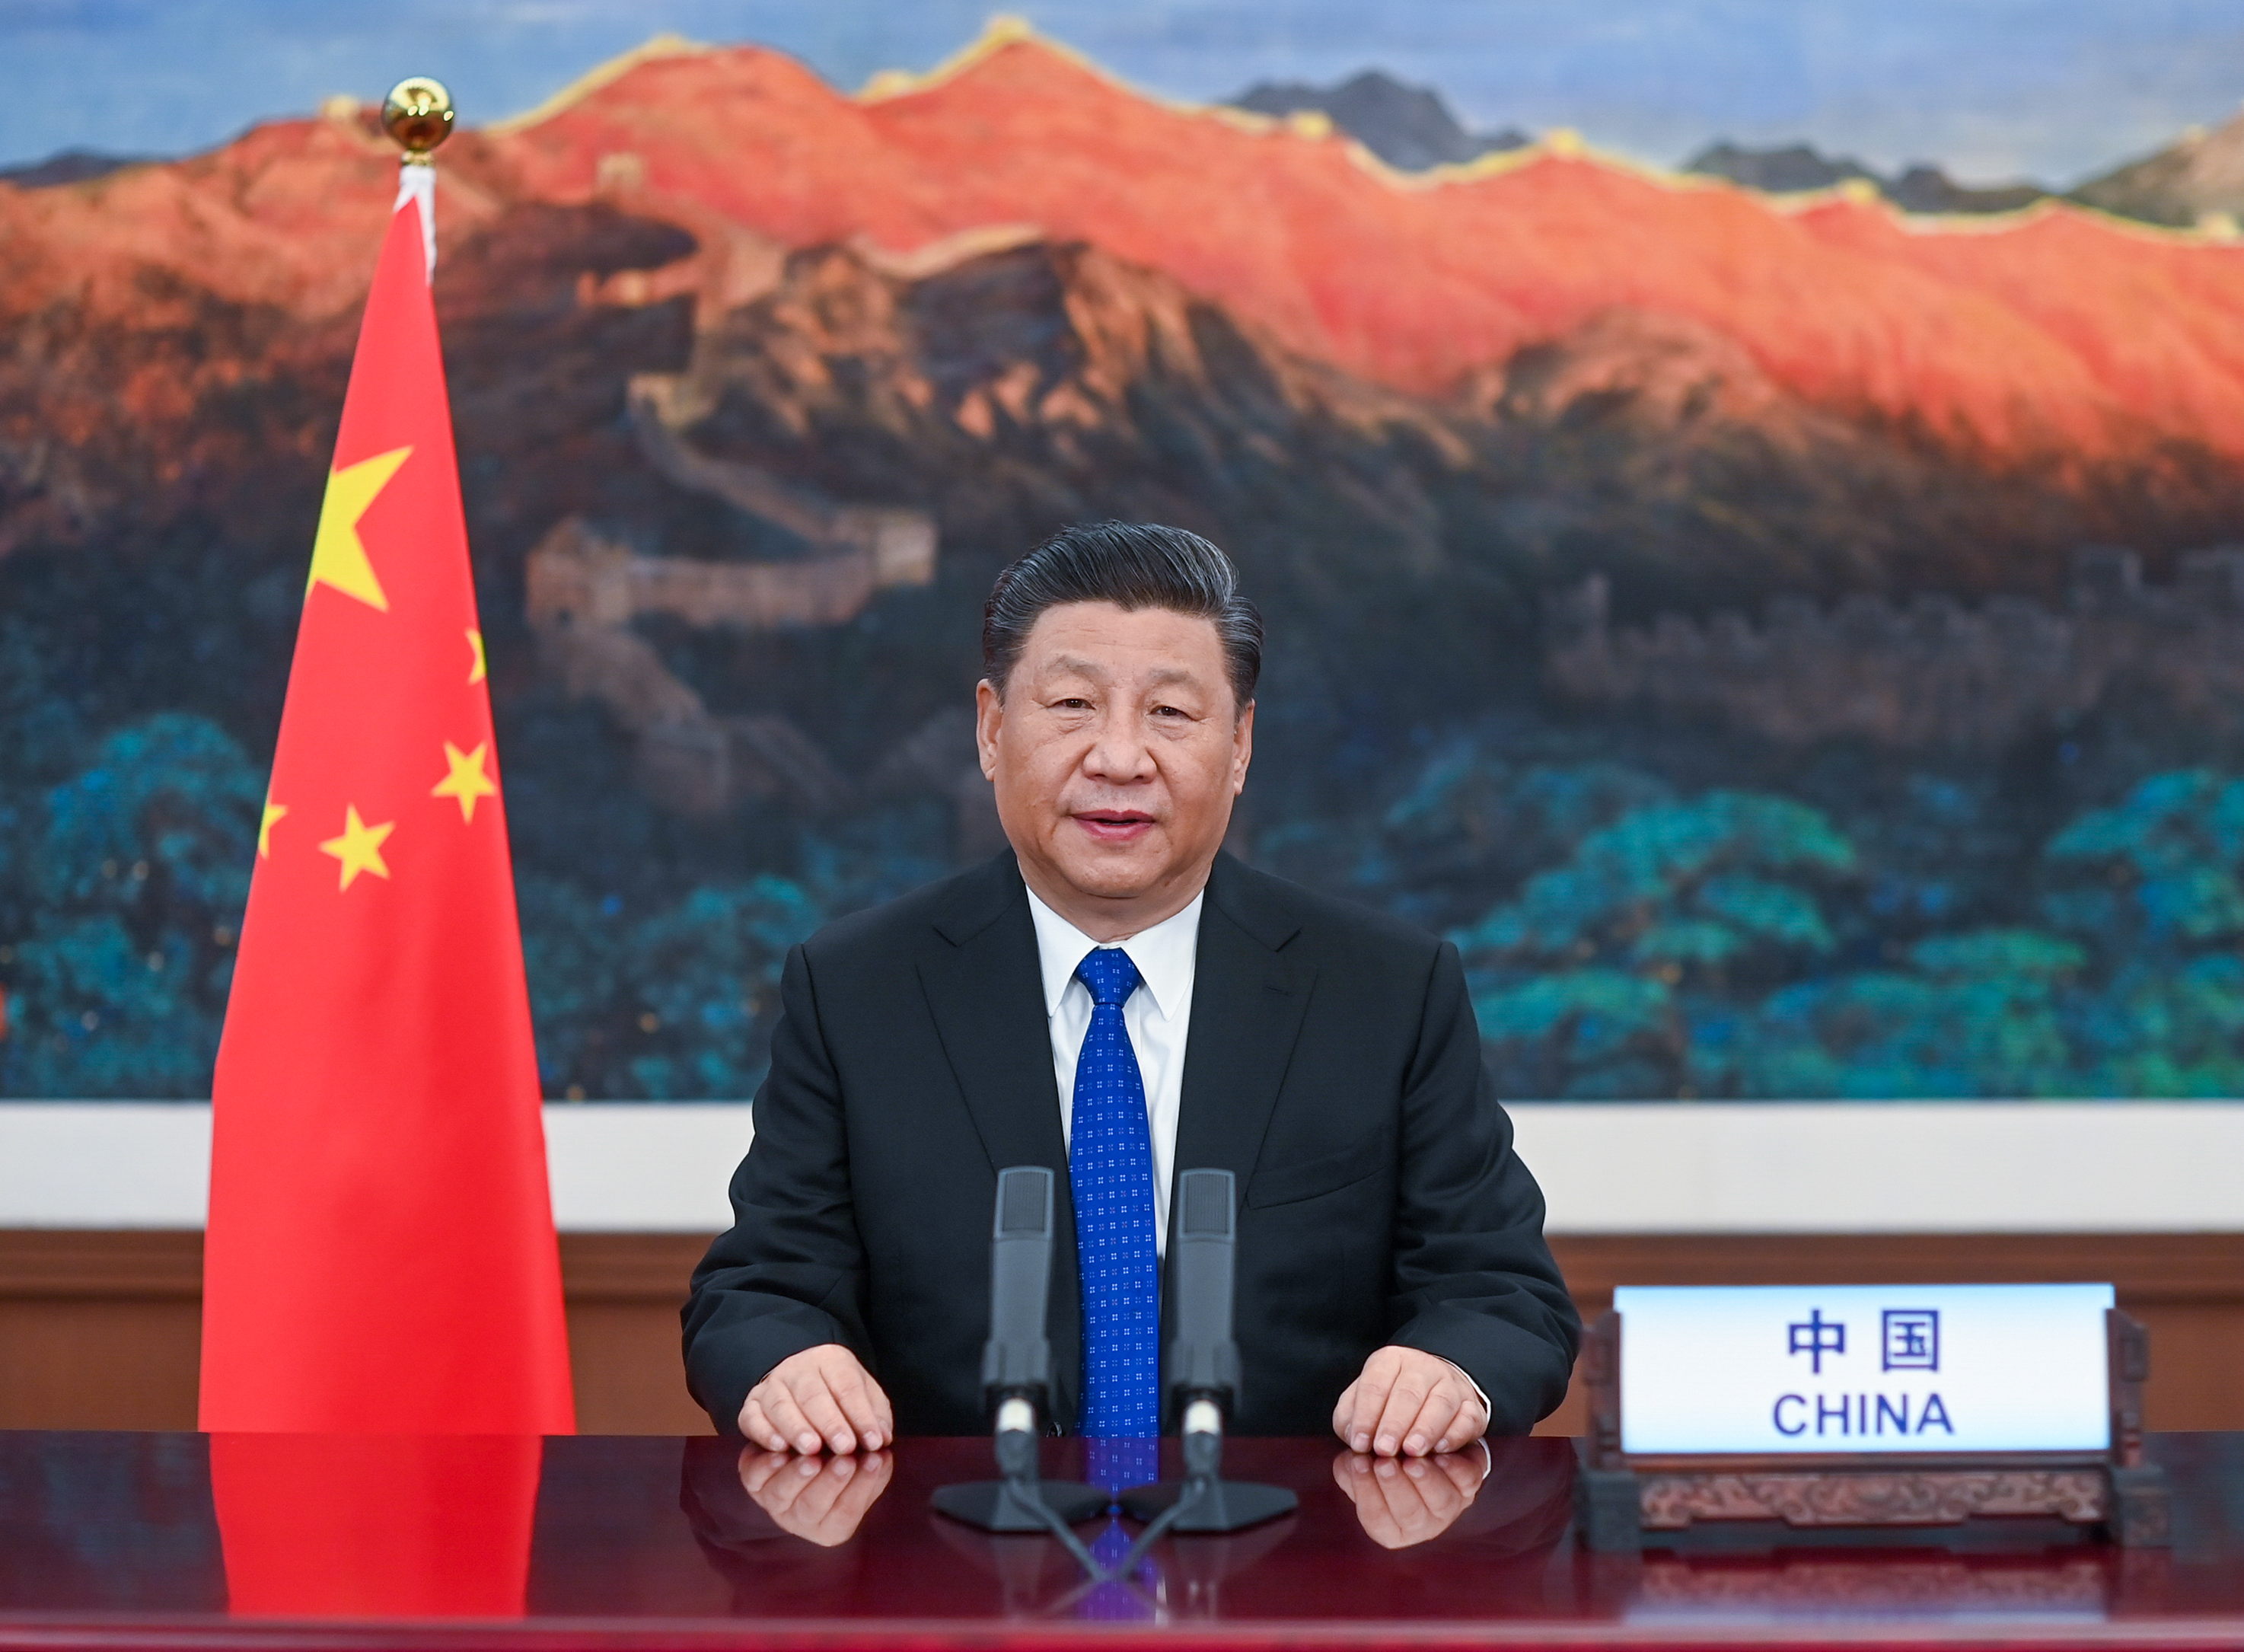 China announces concrete measures to boost global fight against COVID-19 as Xi addresses WHA session